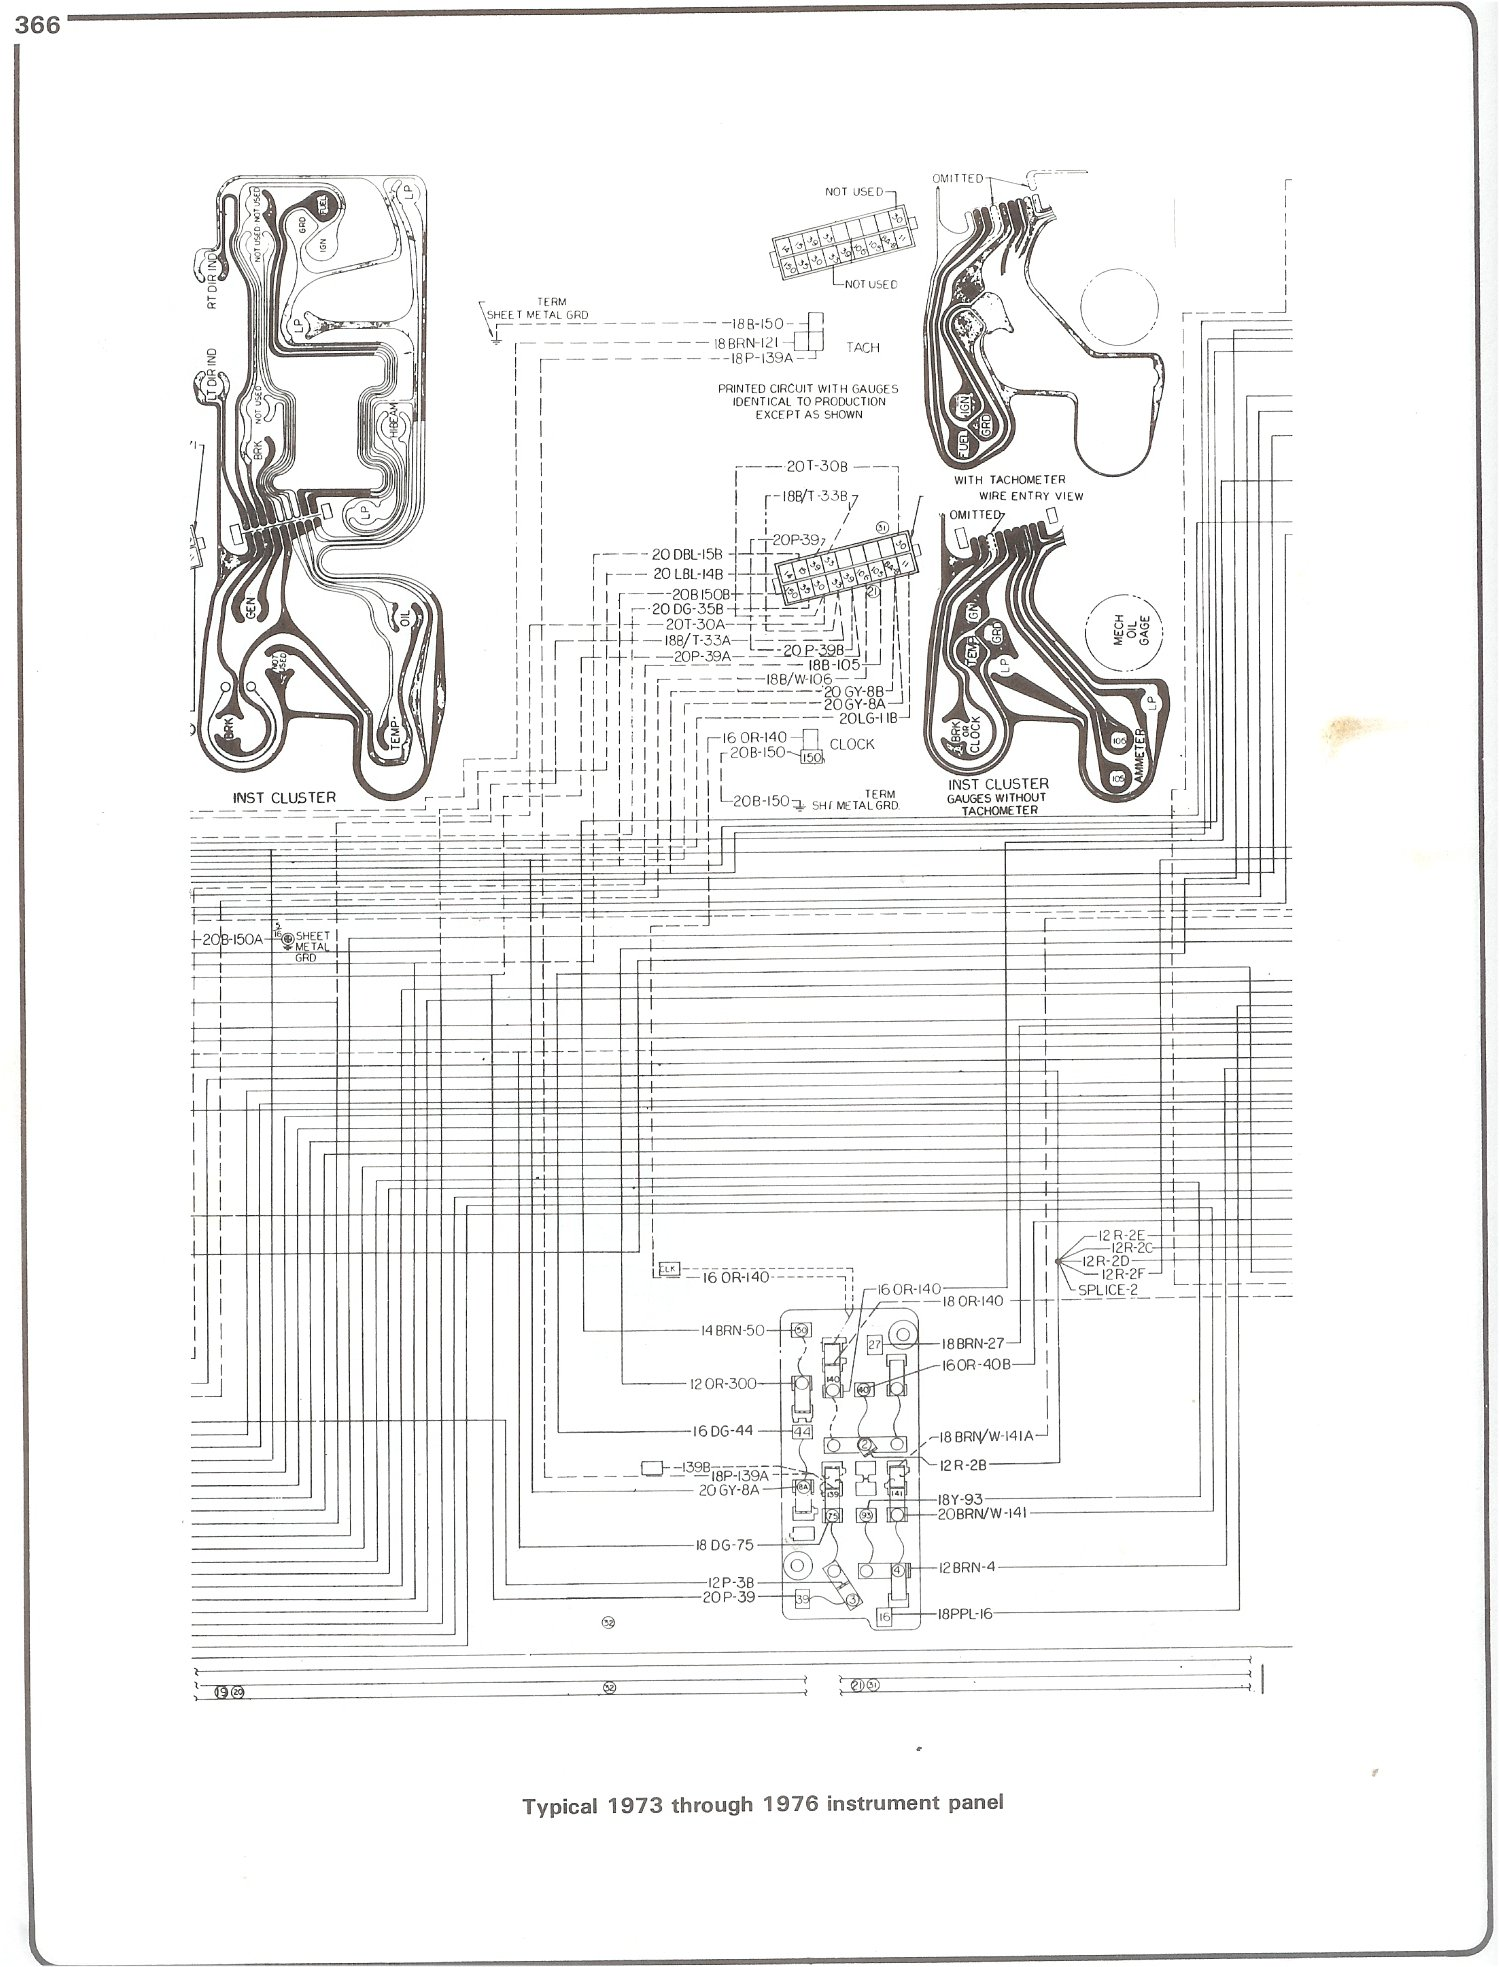 73 76_instrument complete 73 87 wiring diagrams 2001 chevy silverado instrument cluster wiring diagram at gsmportal.co